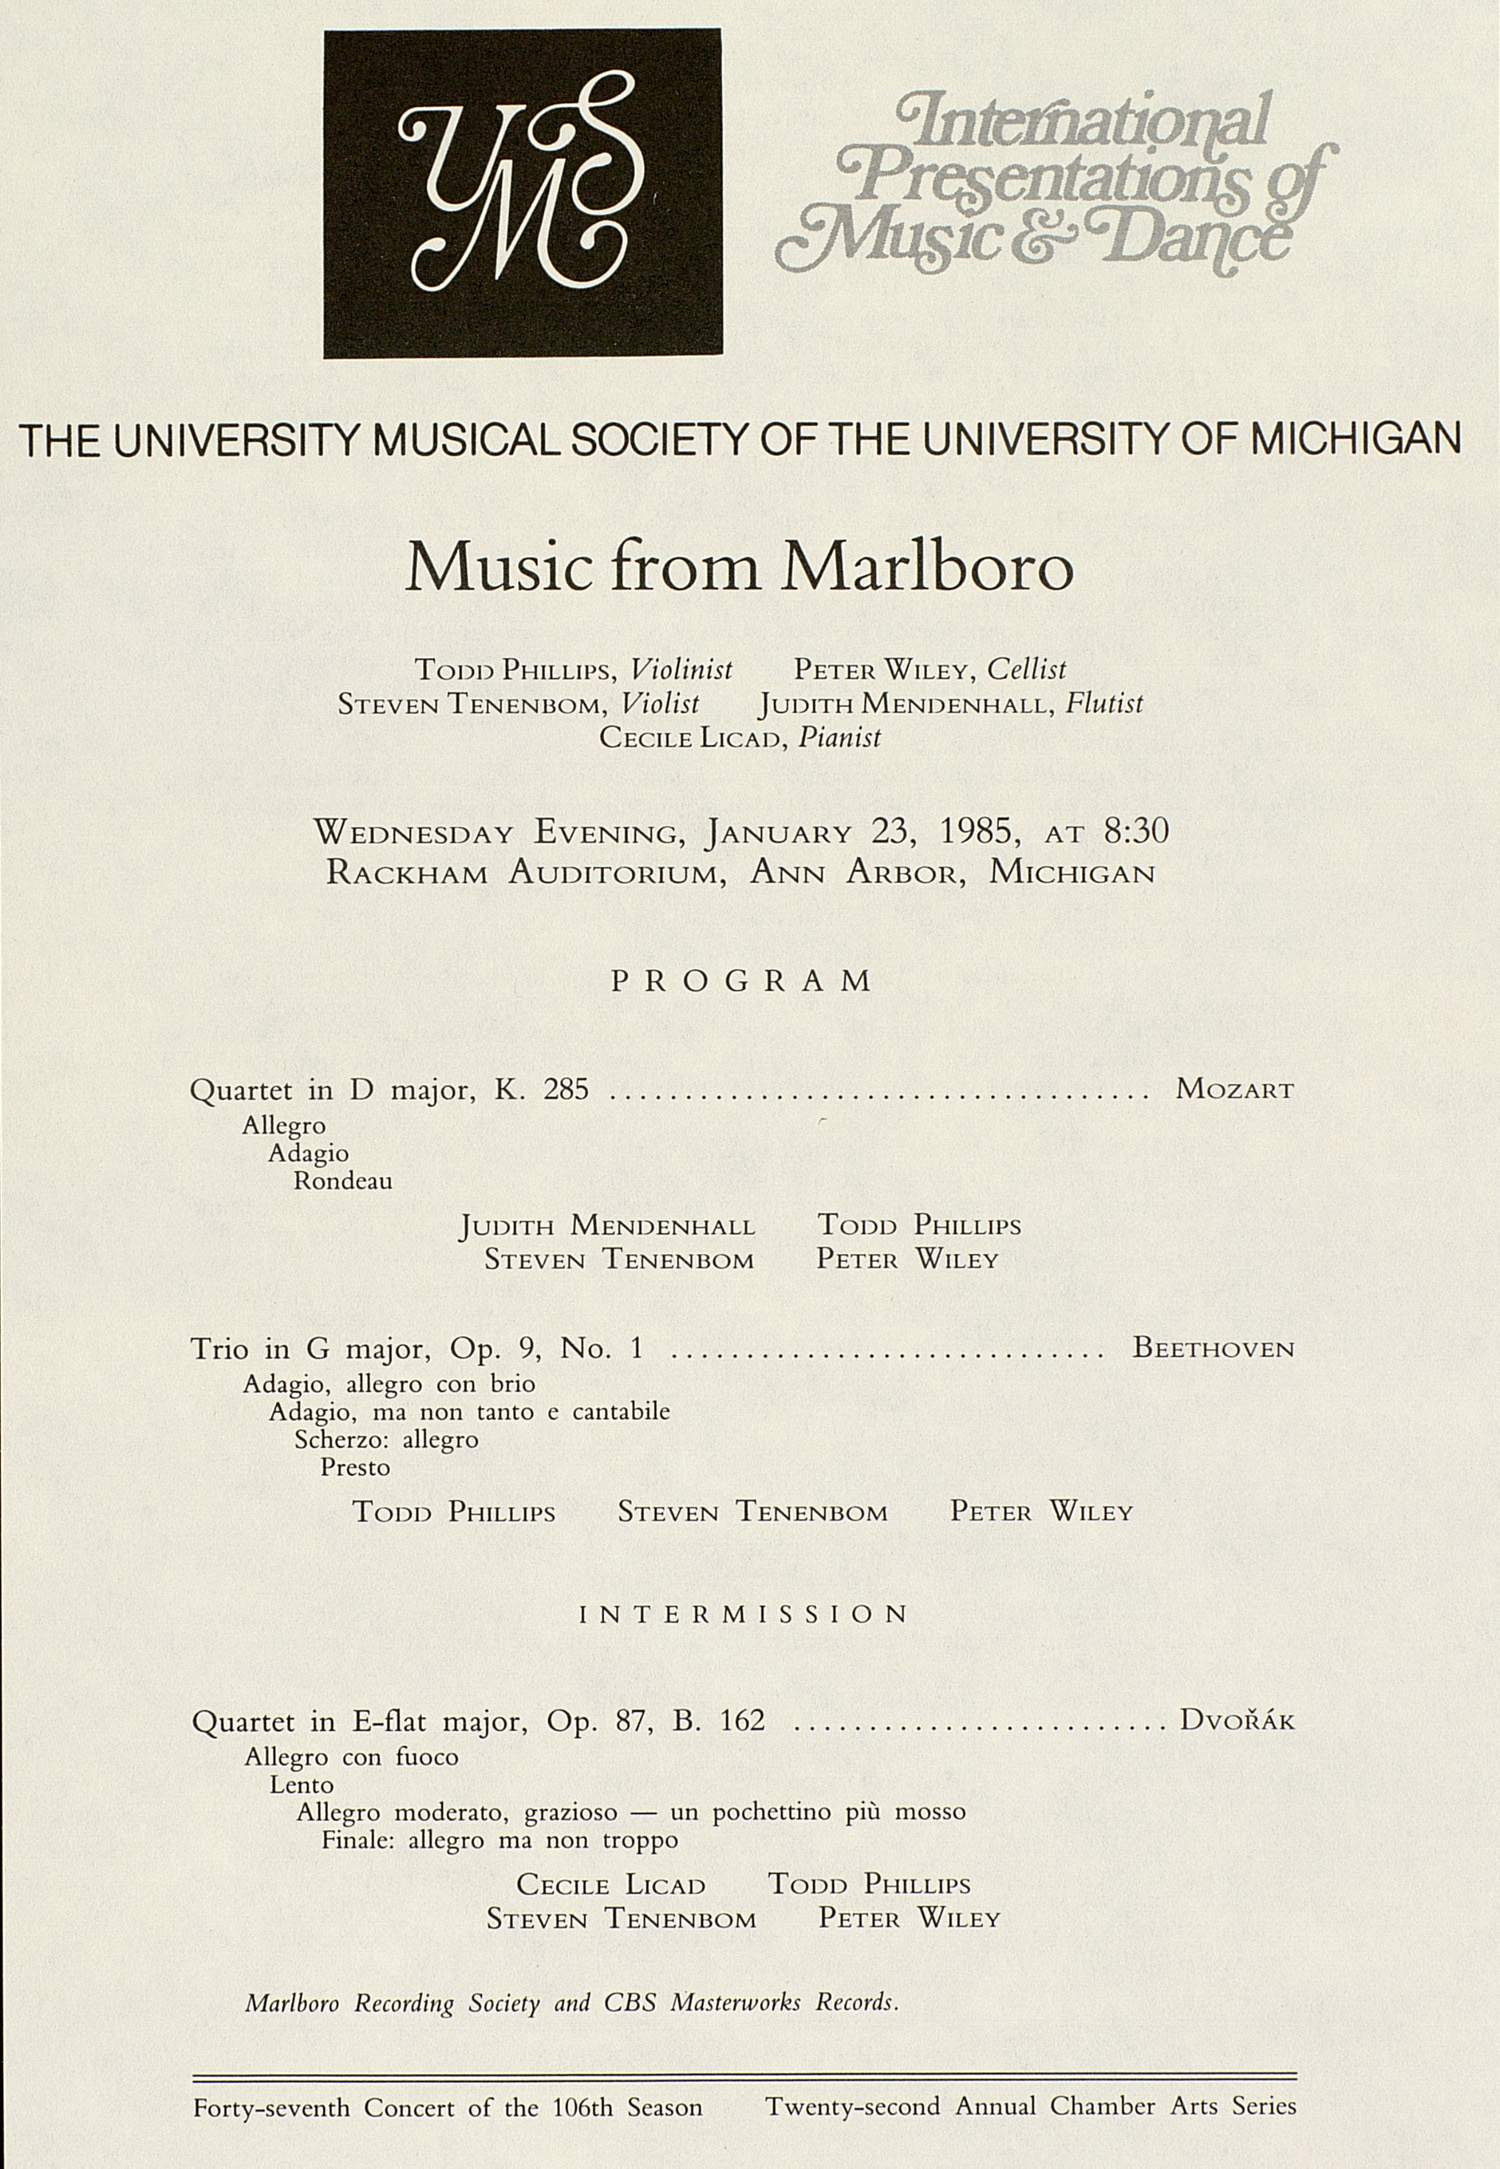 UMS Concert Program, January 23, 1985: International Presentations Of Music & Dance -- Music From Marlboro image